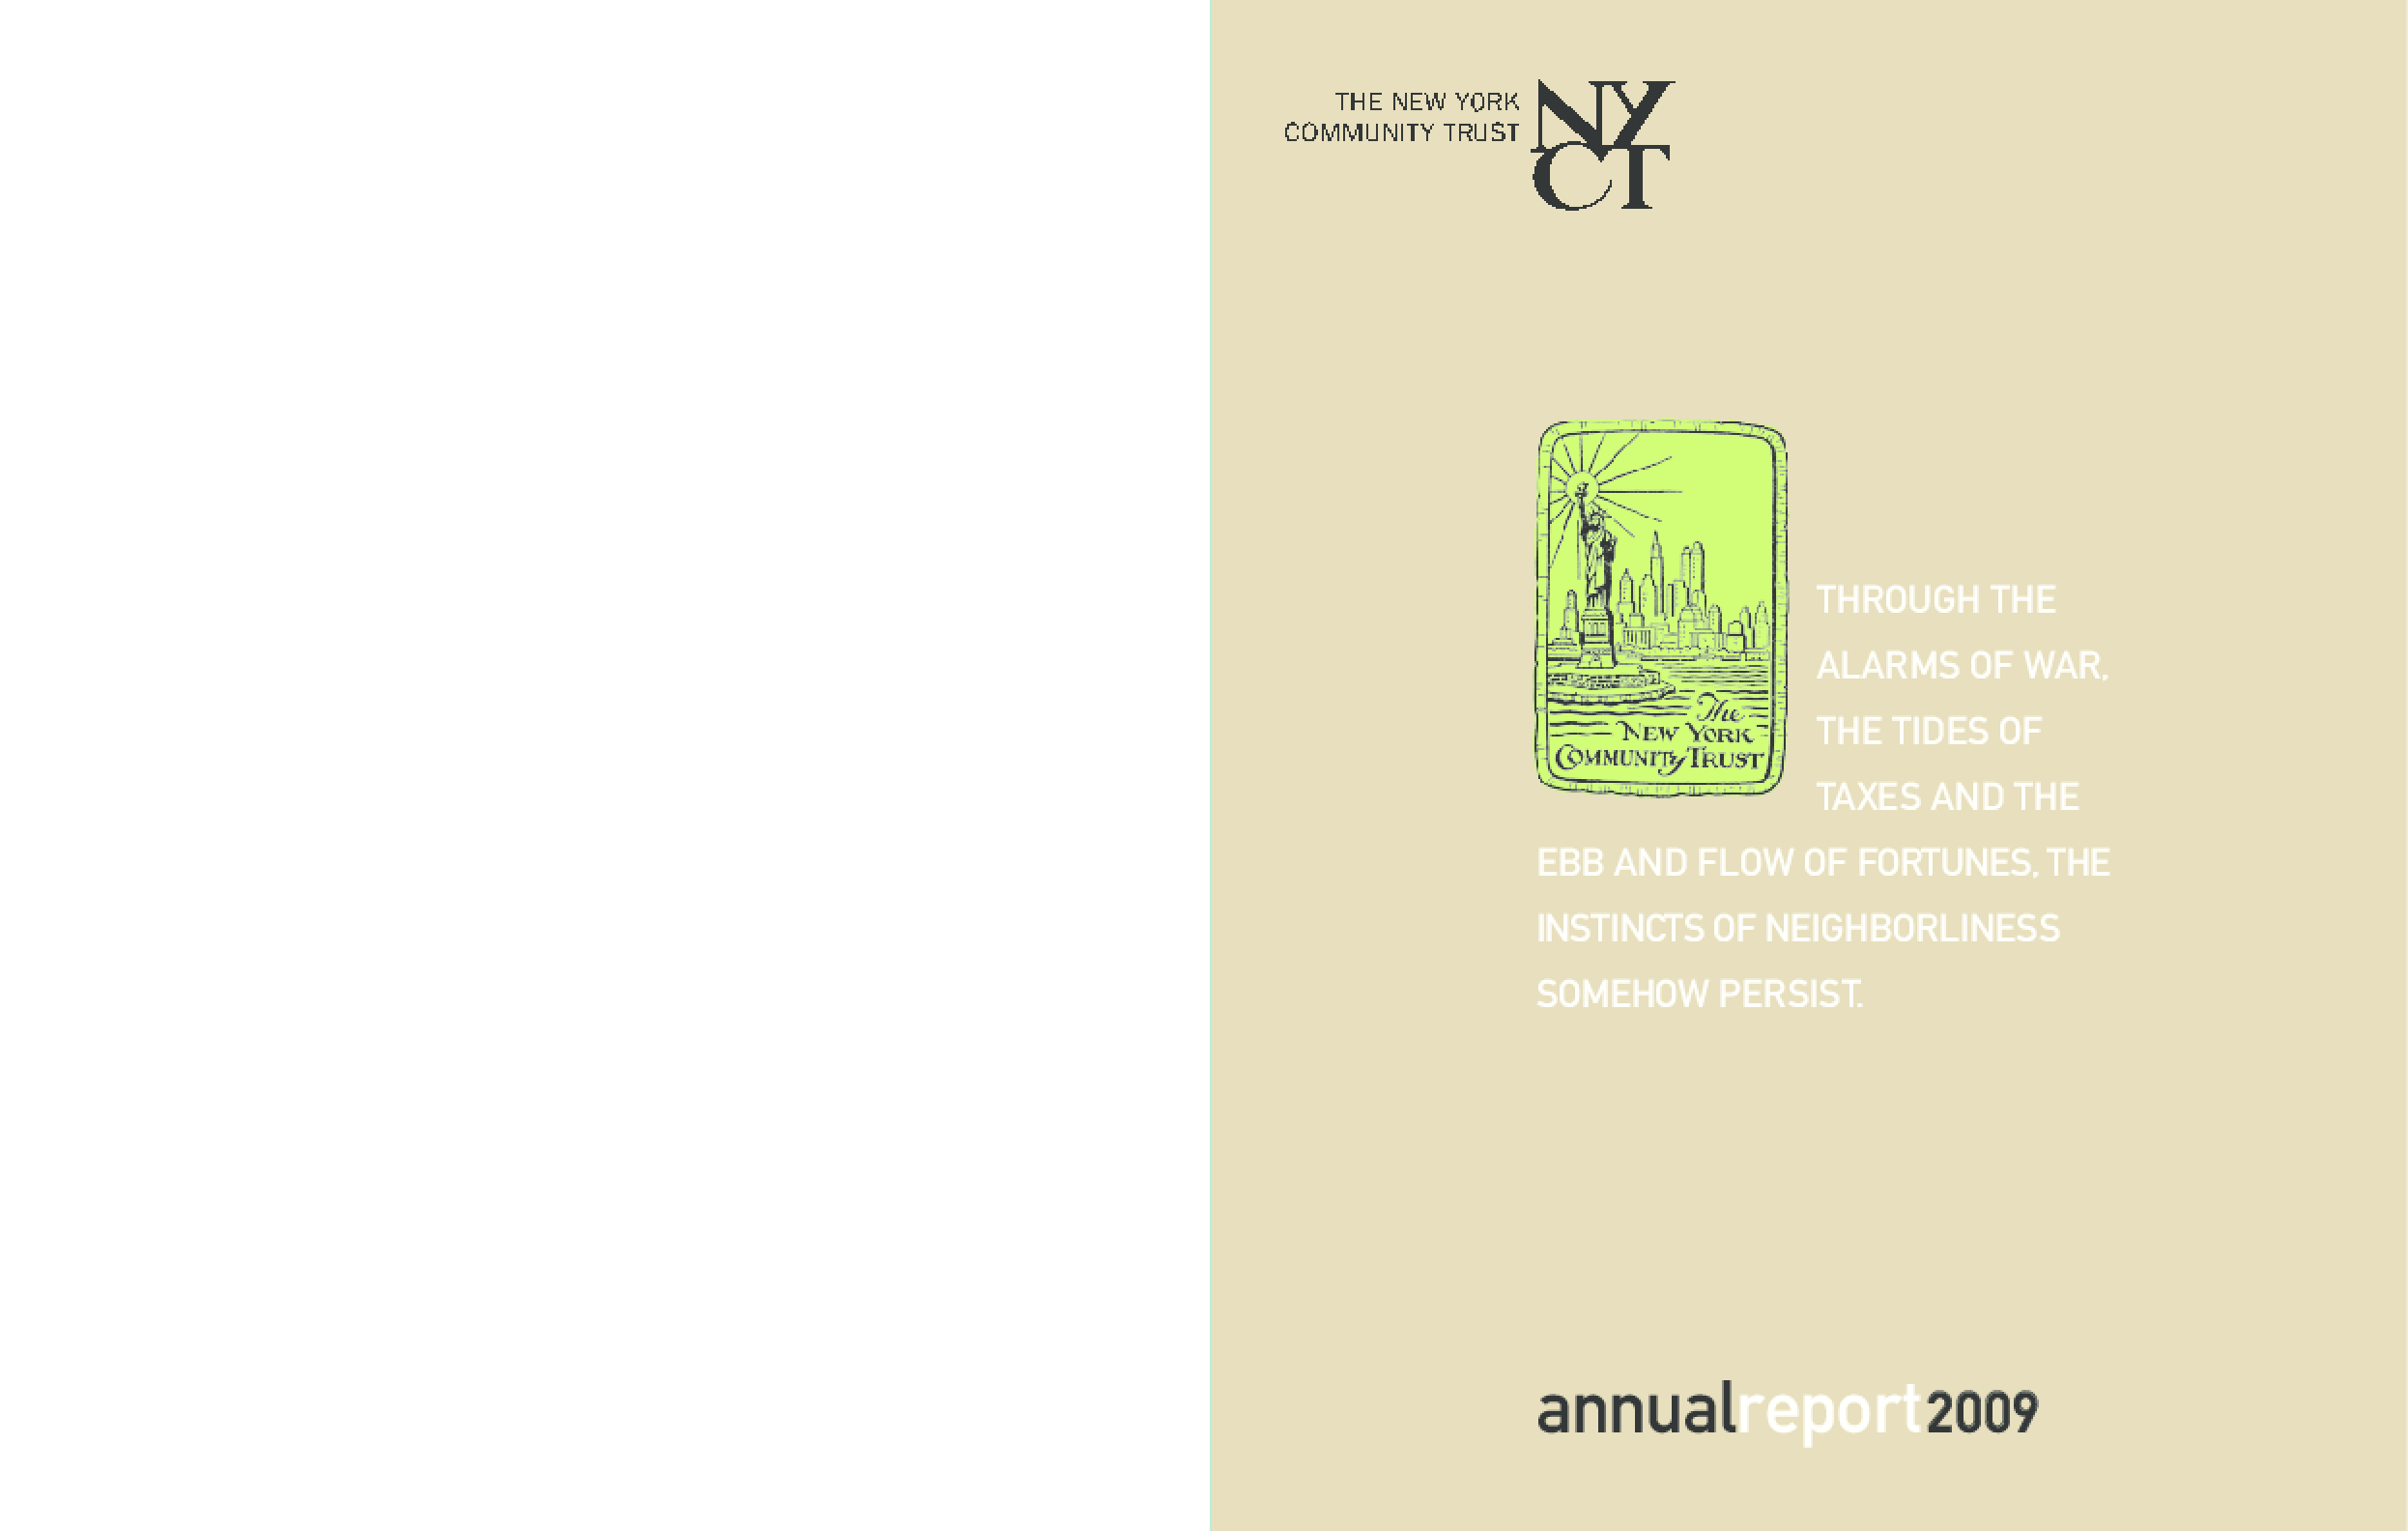 New York Community Trust - 2009 Annual Report